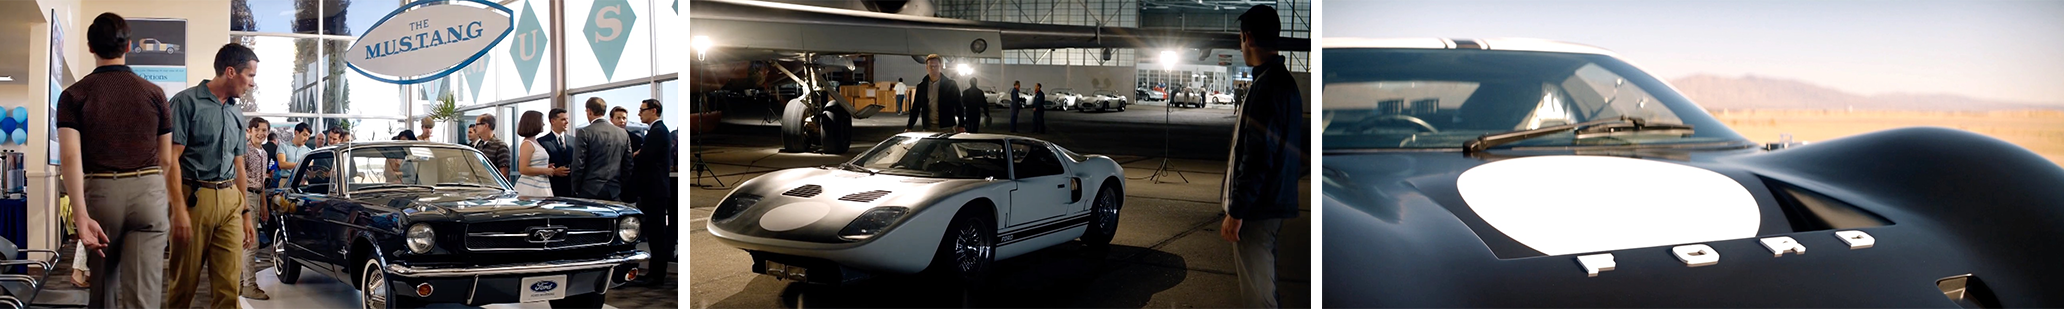 Ford, Concave brand tracking, product placement, brands, movies, entertainment marketing, branded integration, integration marketing, analysis, valuation, metrics, measurement, concave, Oscars, 2020, academy awards, Ford V Ferrari, ford, Ferrari, Christian Bale, Matt Damon, for motor company